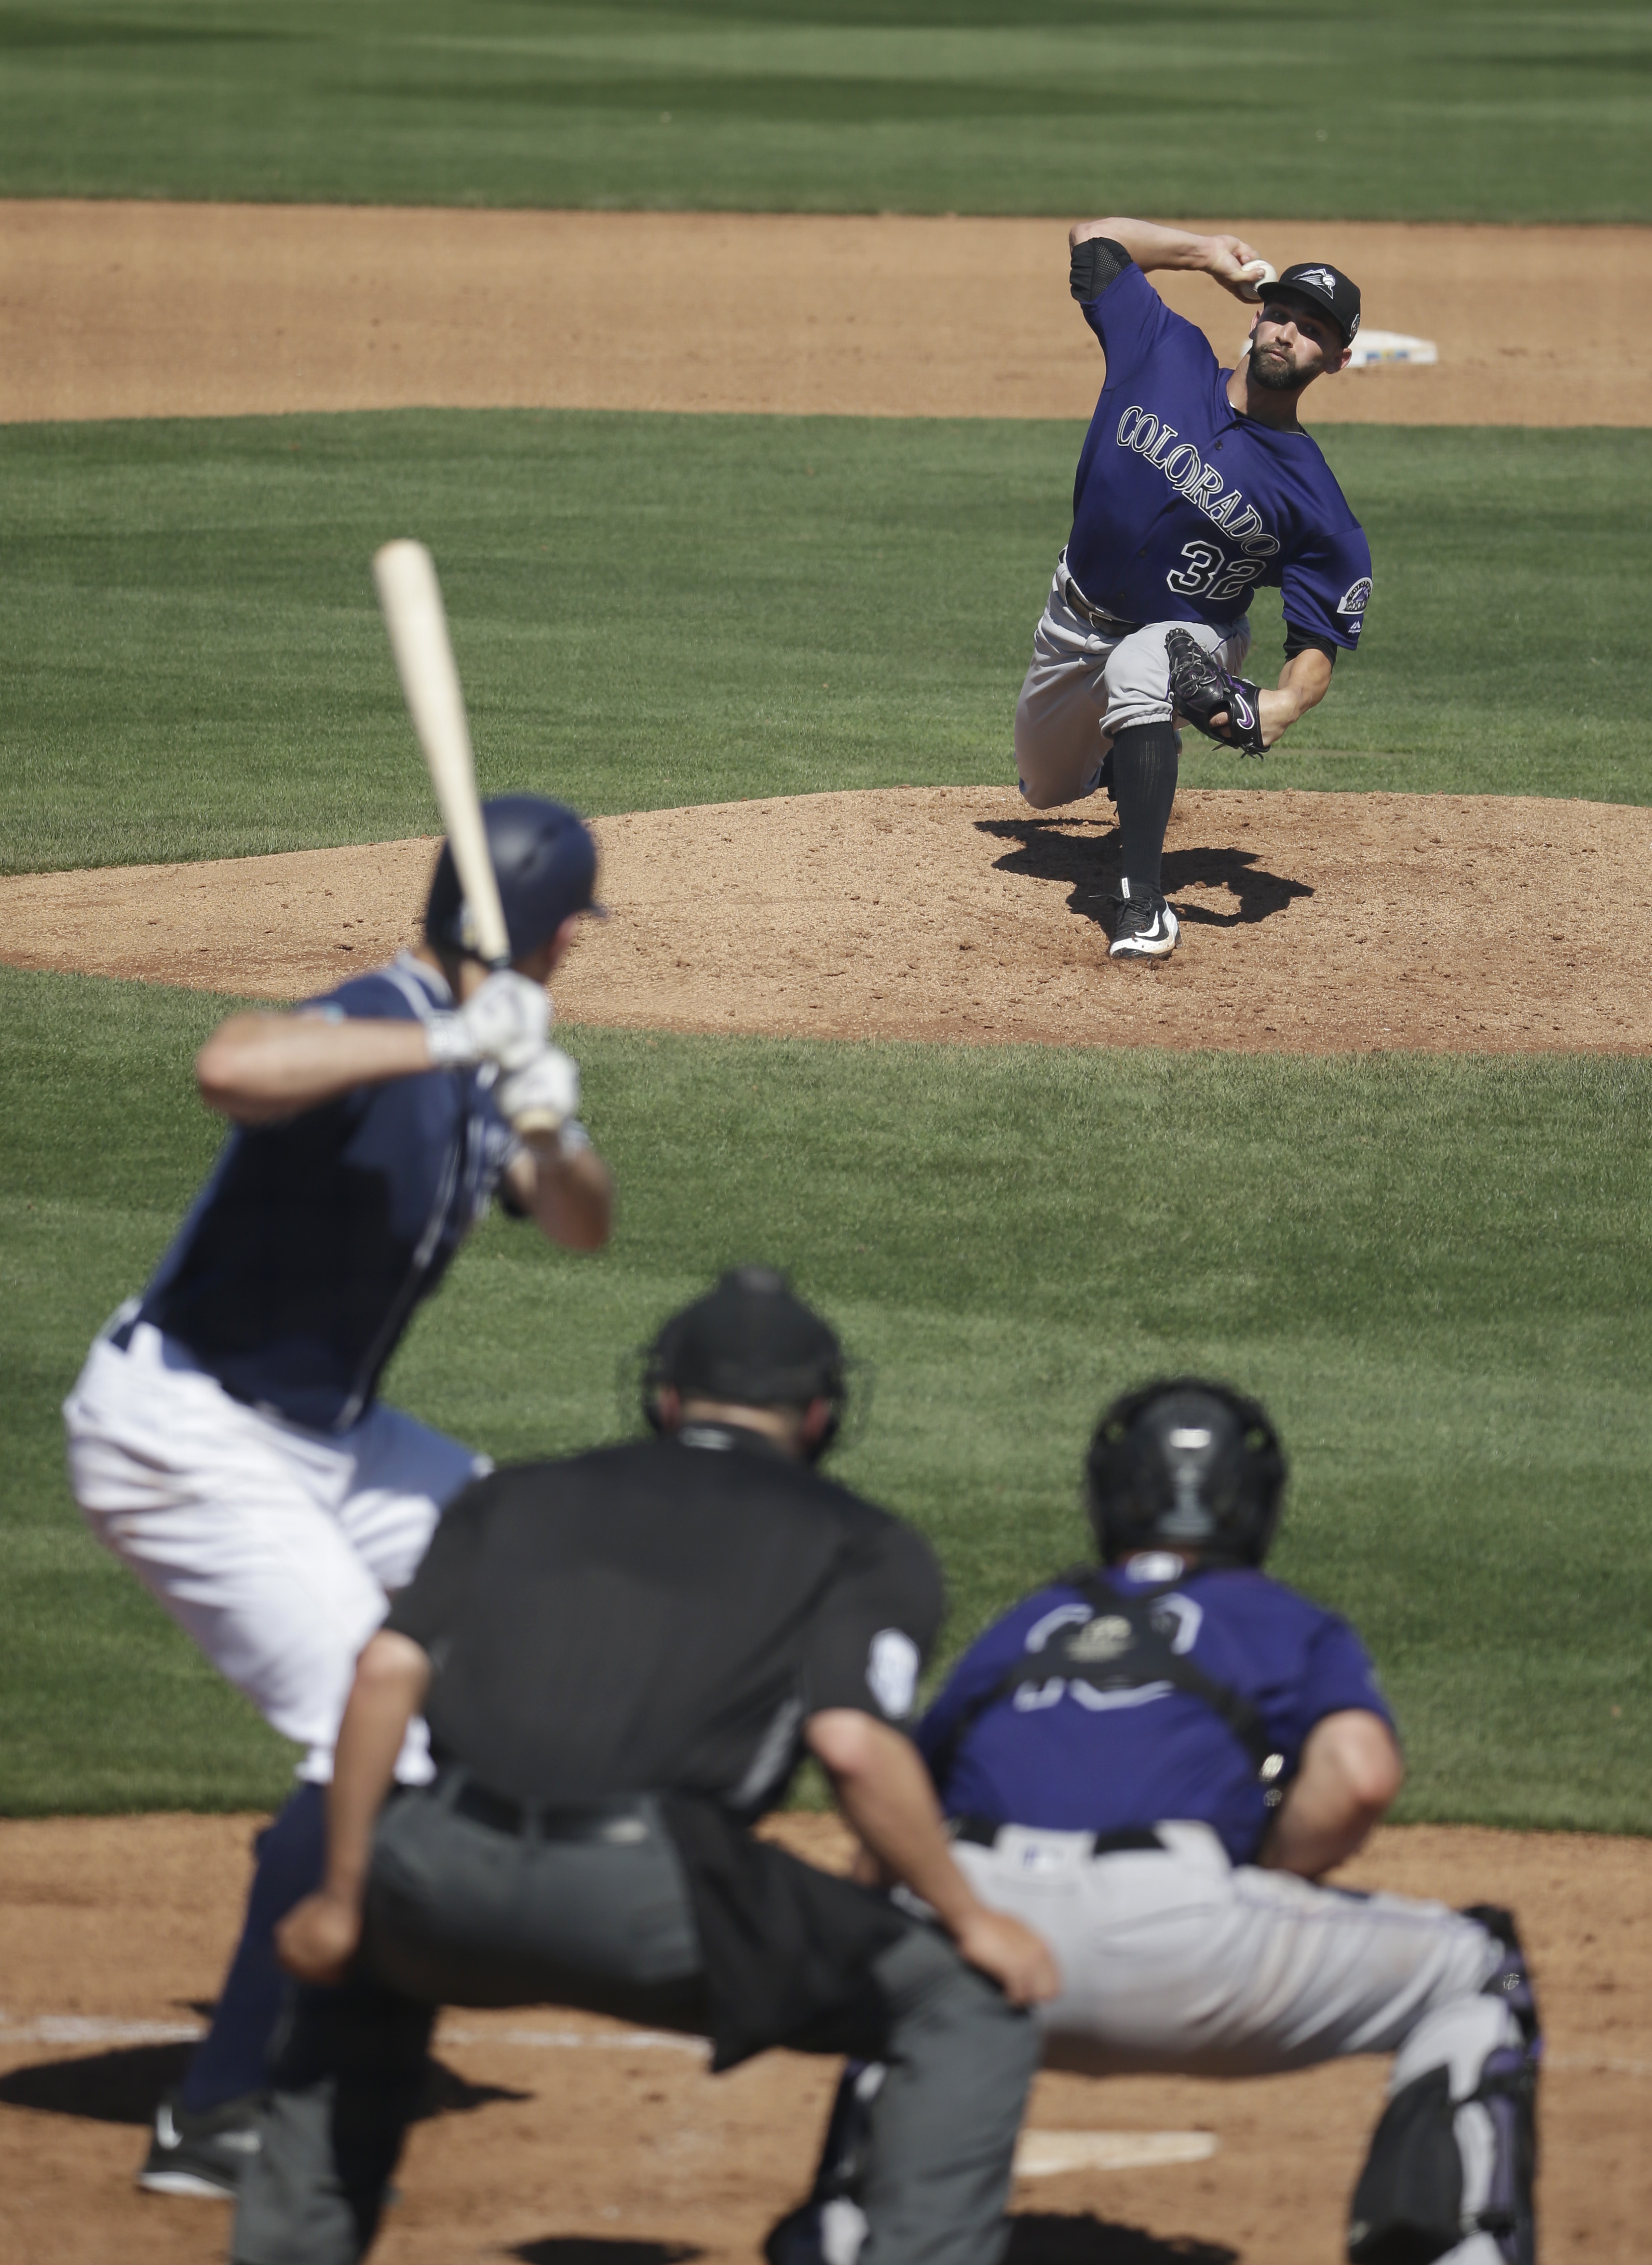 Colorado Rockies' Tyler Chatwood, top, throws during the fourth inning of a spring training baseball game against the San Diego Padres on Saturday, March 19, 2016, in Peoria, Ariz. (AP Photo/Darron Cummings)